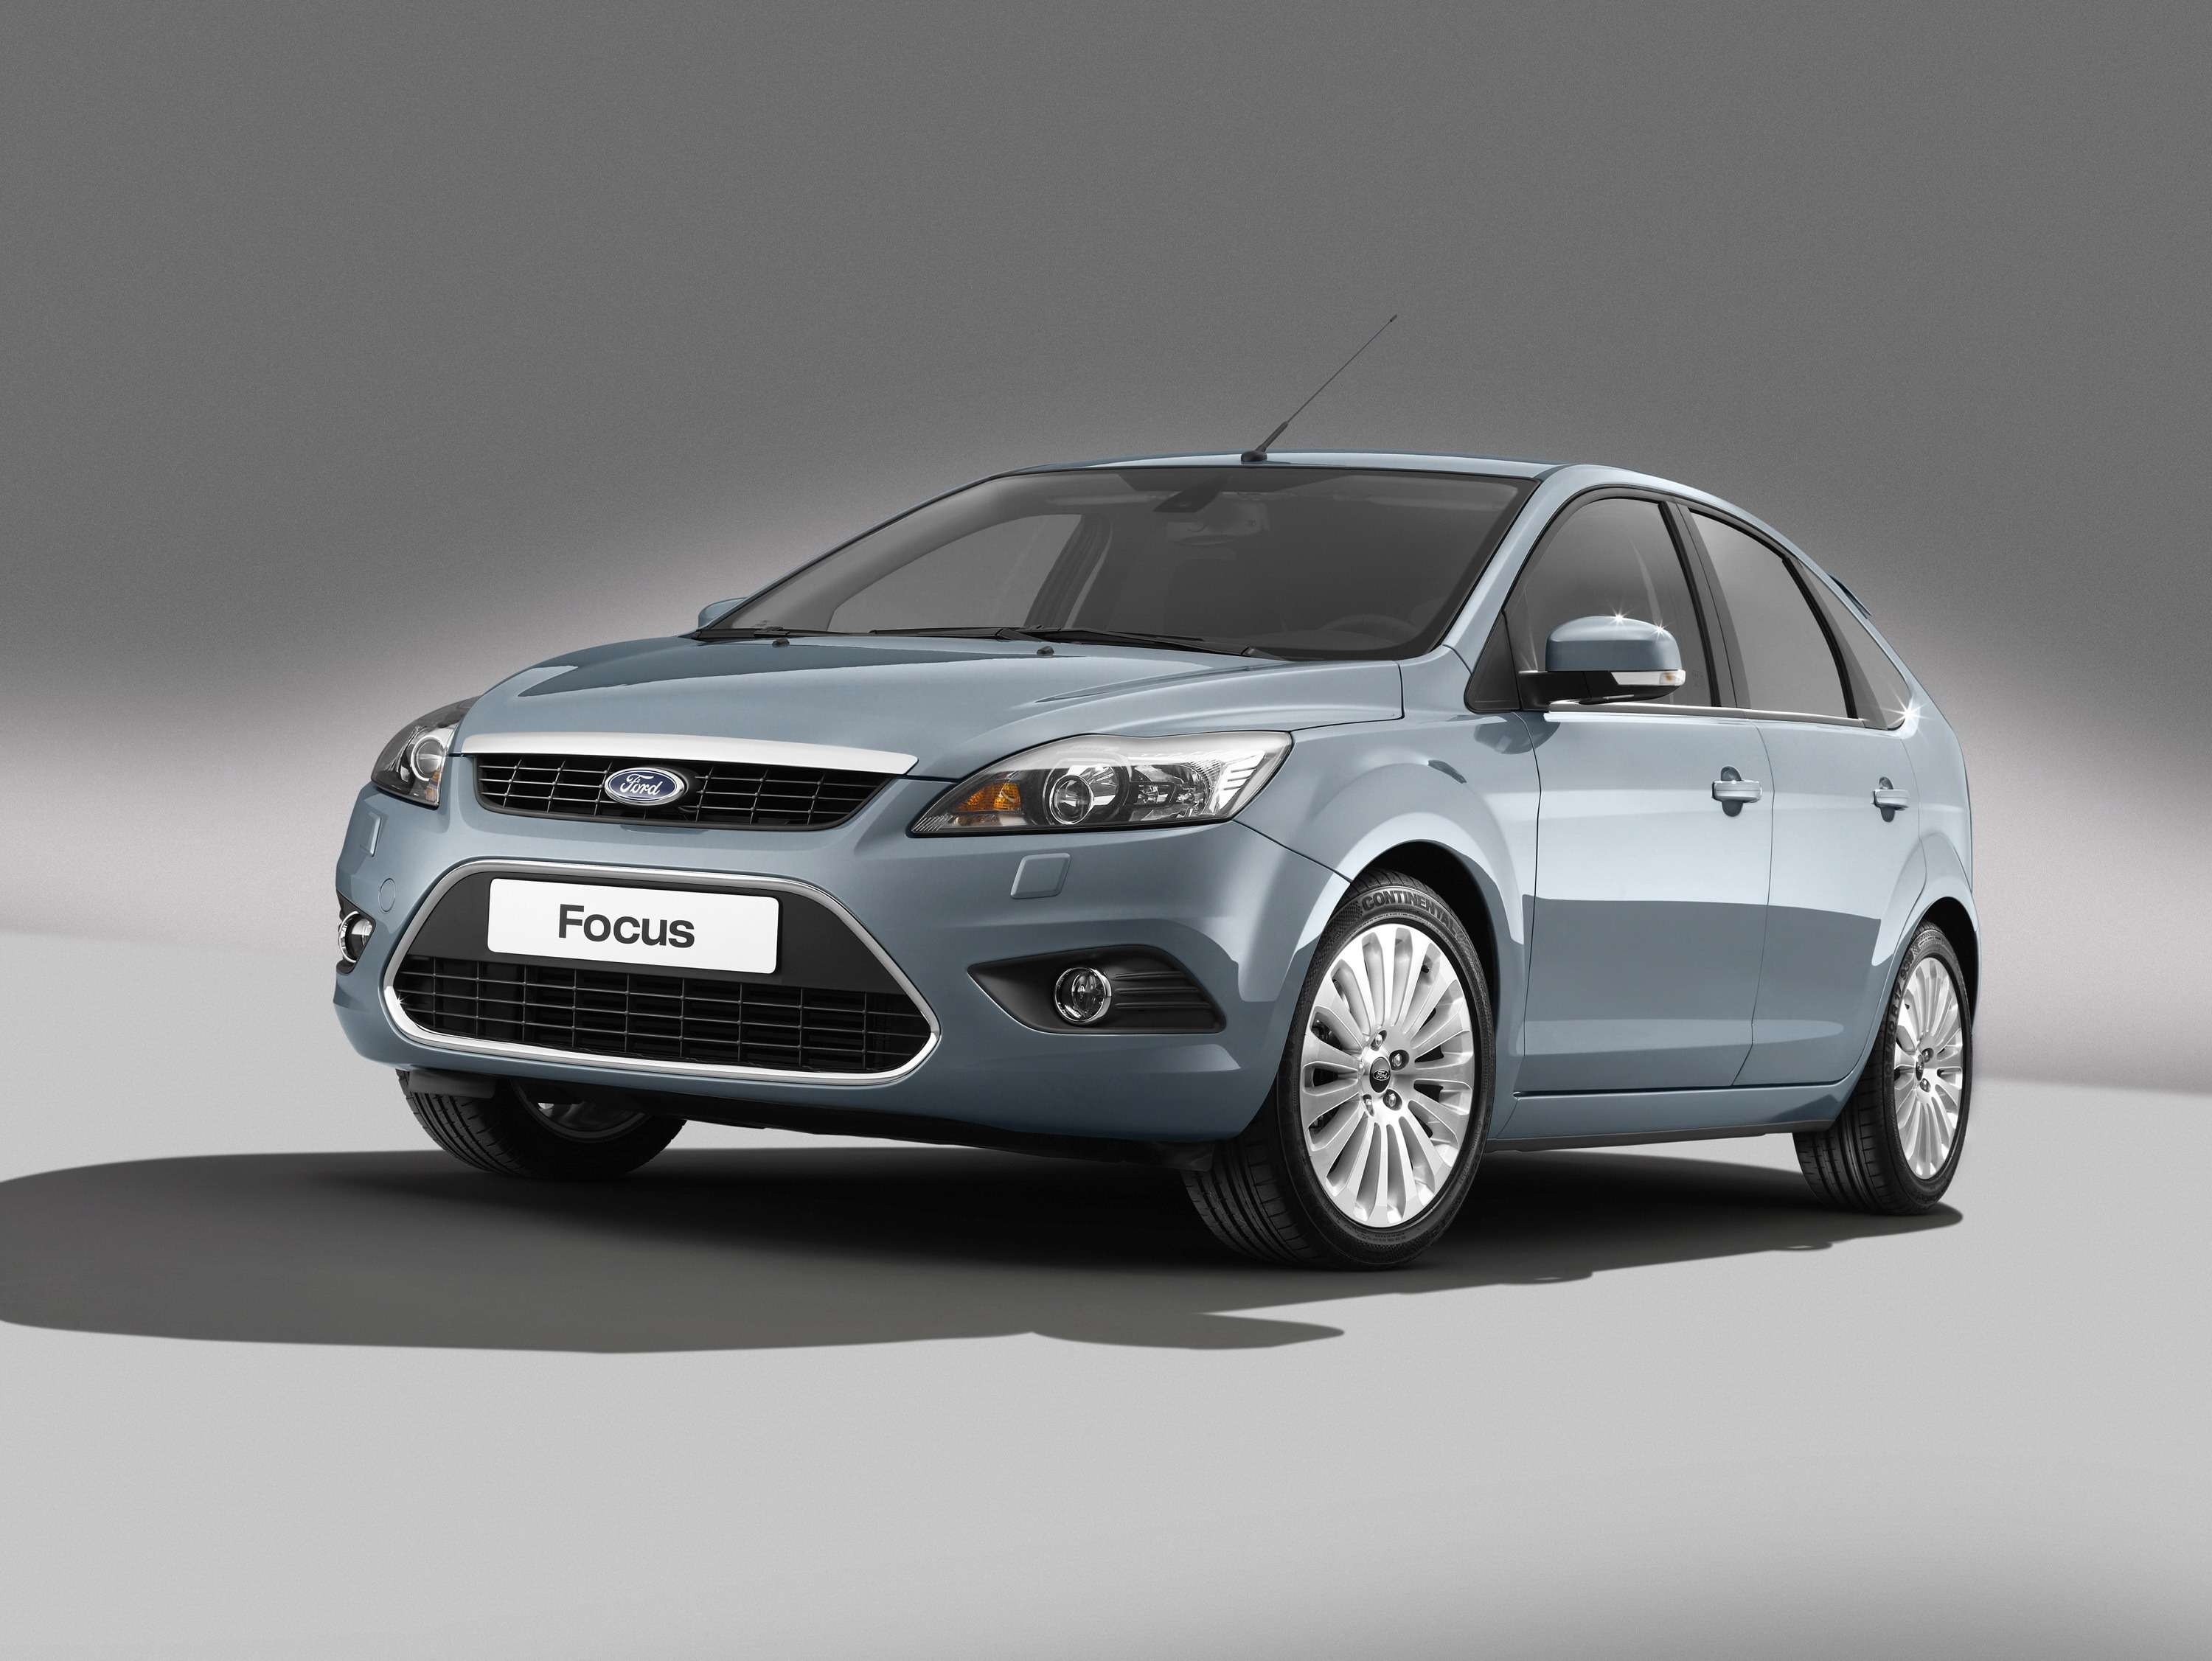 2008 Ford Focus (Europe)